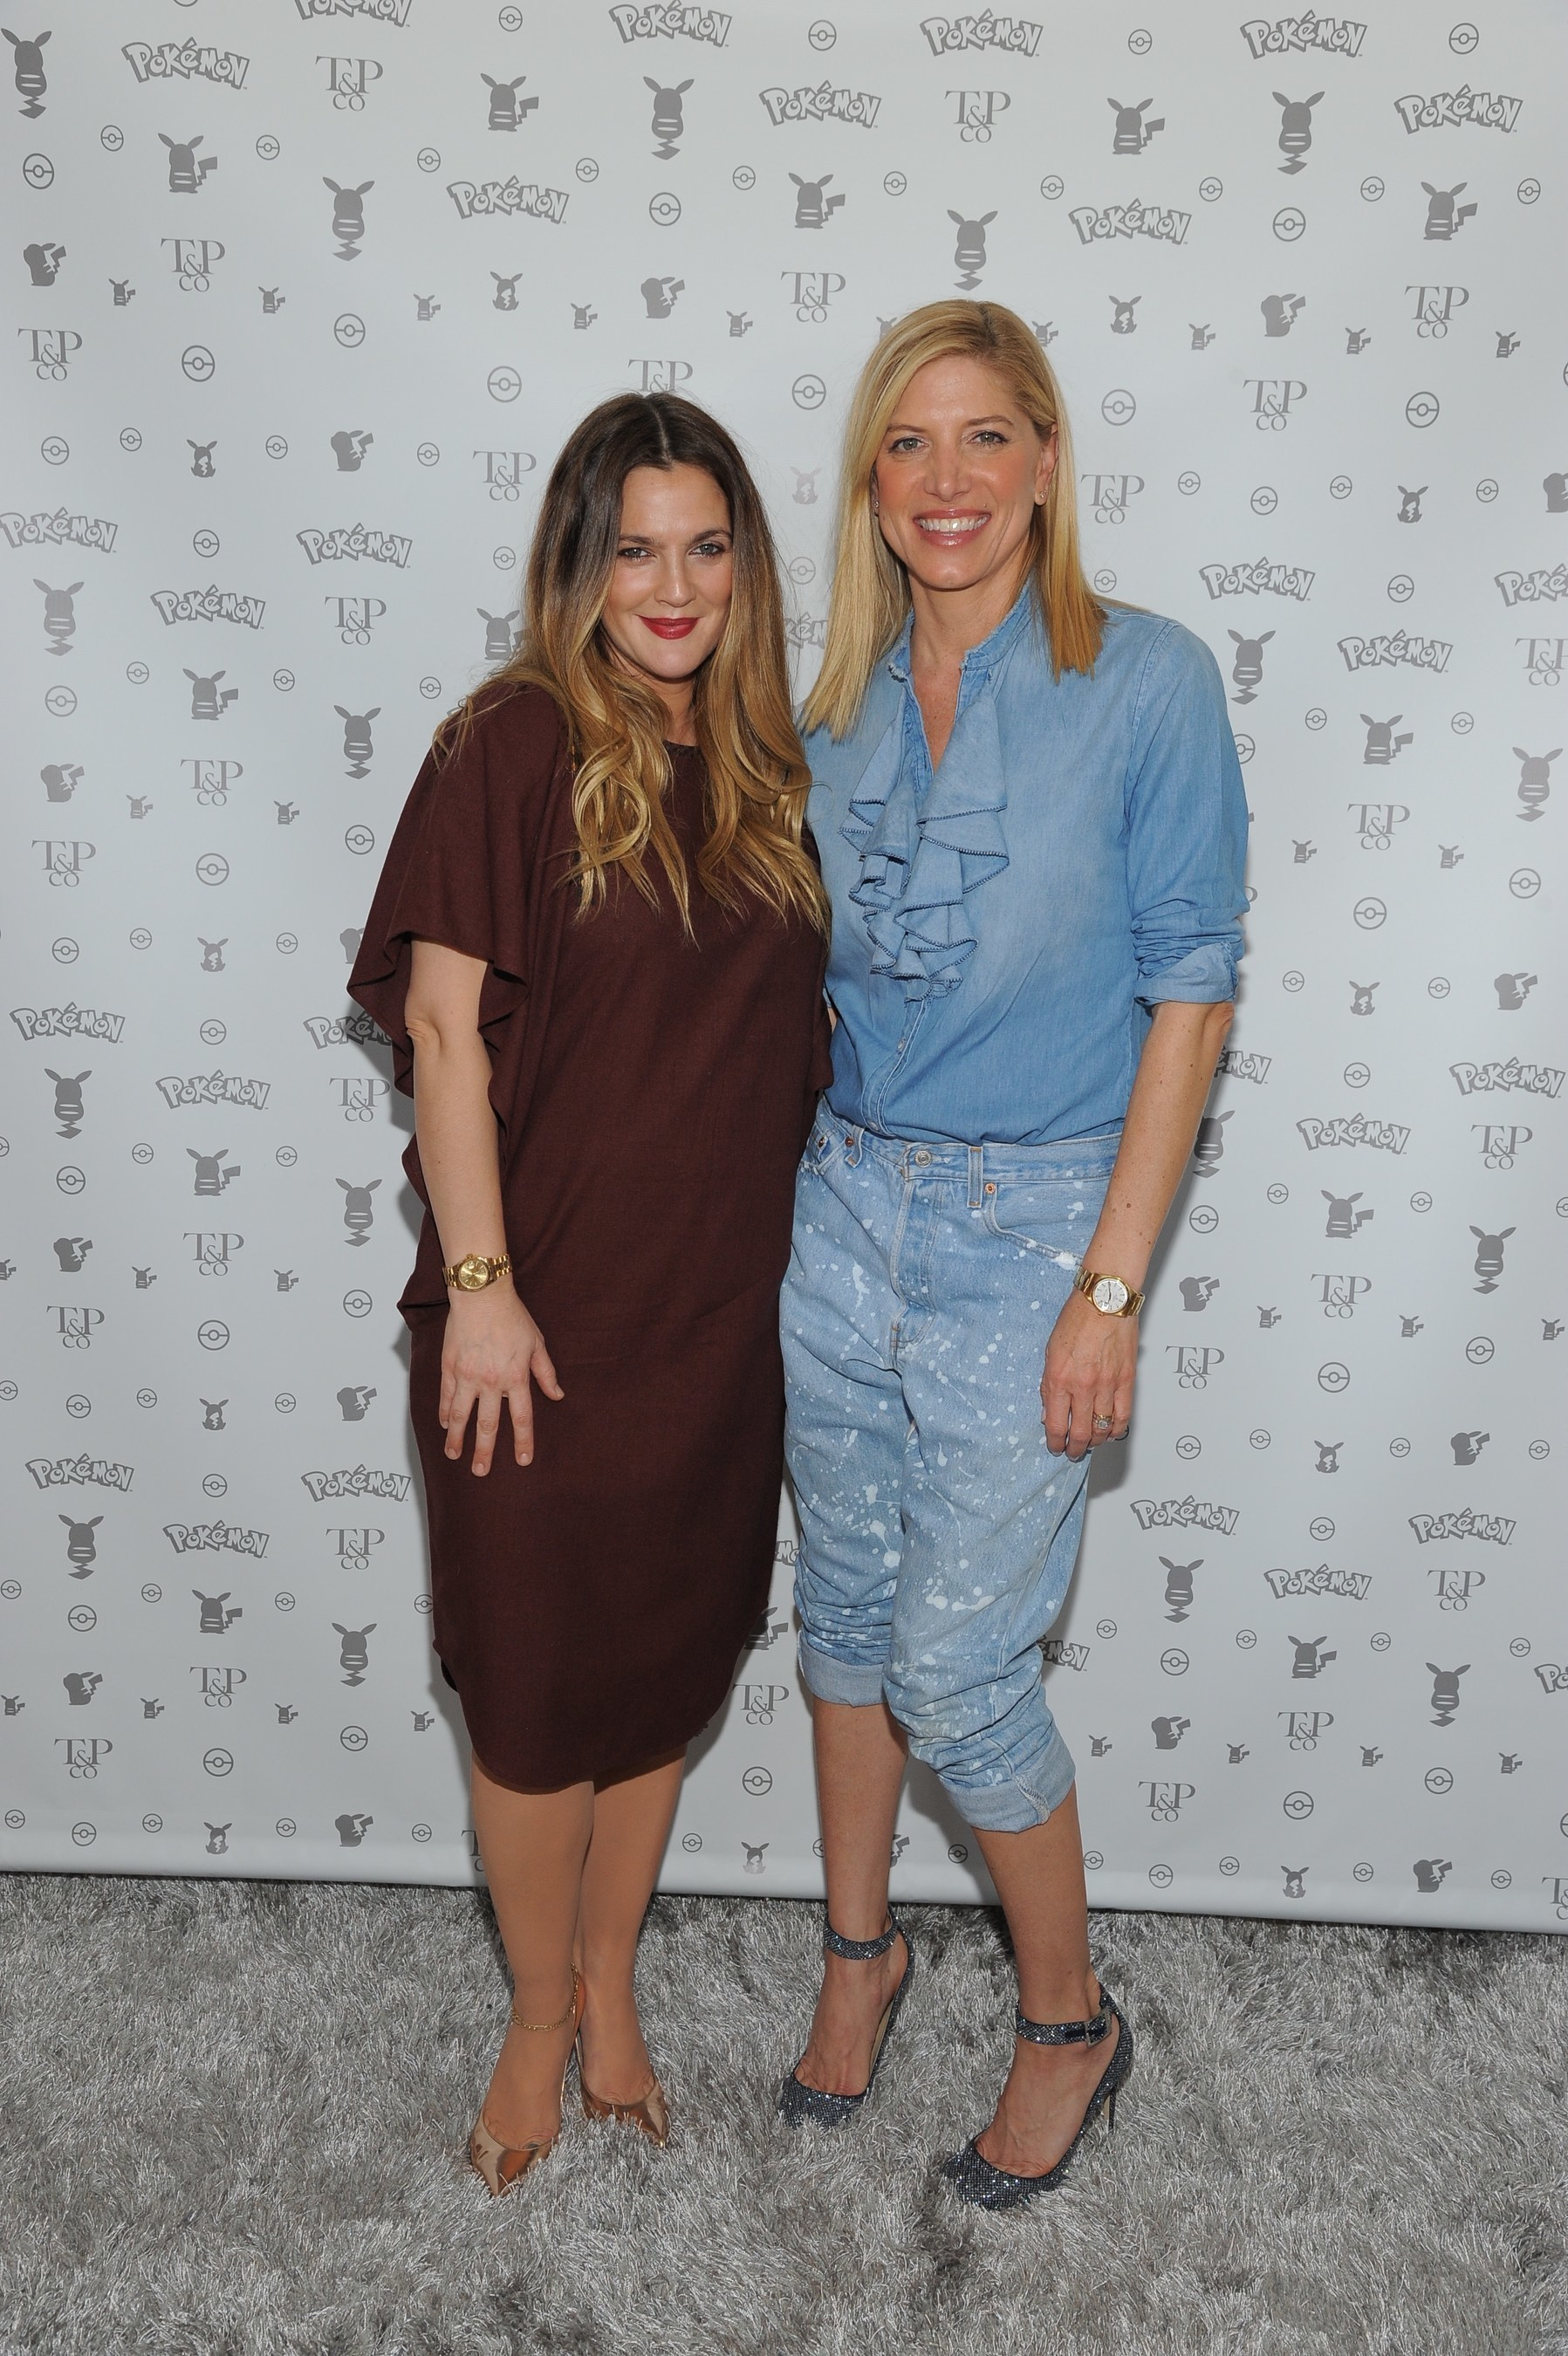 Drew Barrymore Celebrates Pok'mon Afternoon Soiree at Sunset Tower